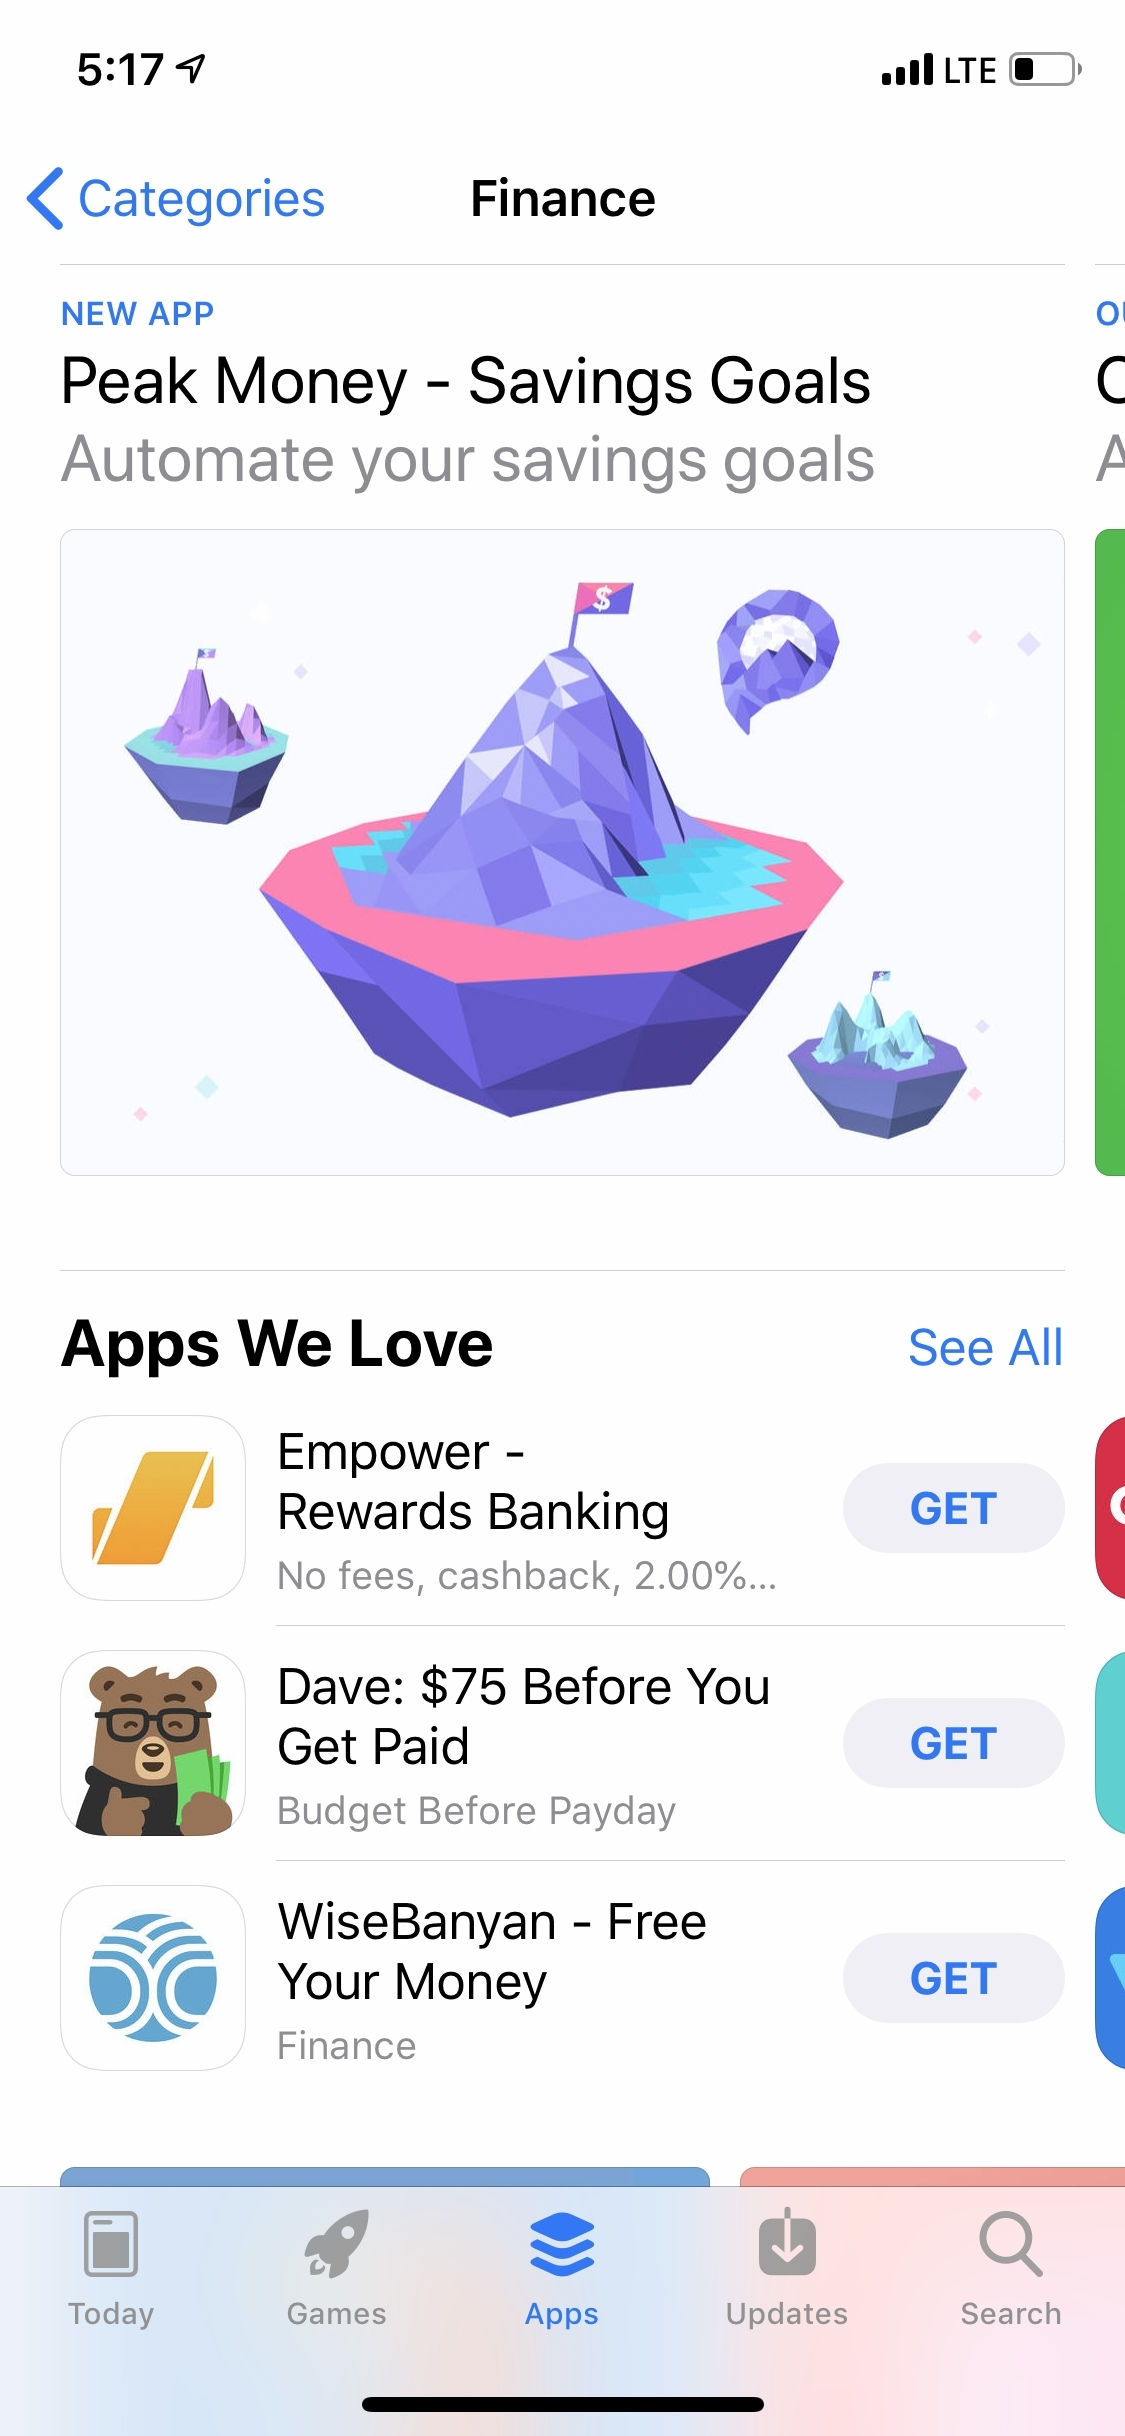 Peak Money's Mindfulness-Focused Savings App Recognized by